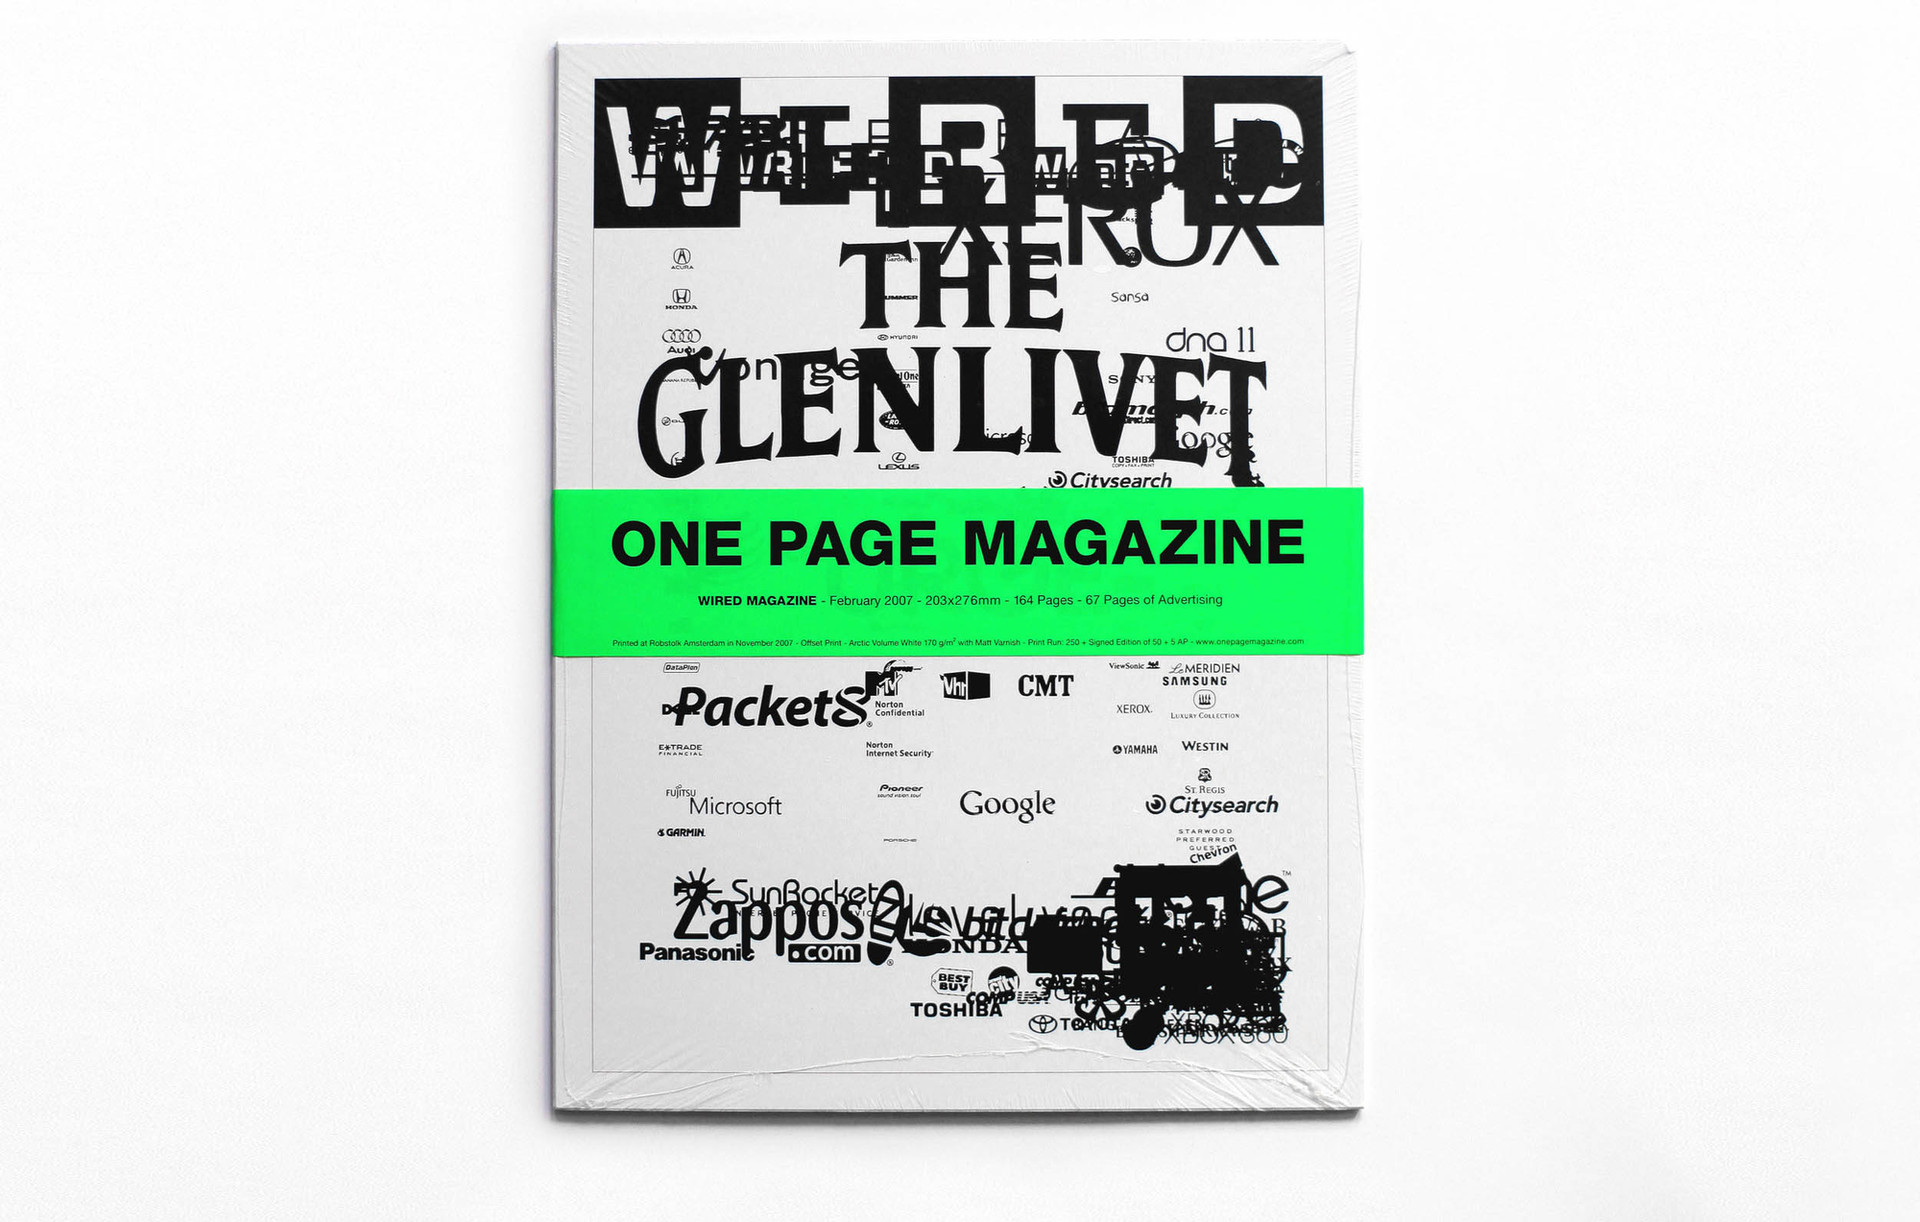 ONE PAGE MAGAZINE